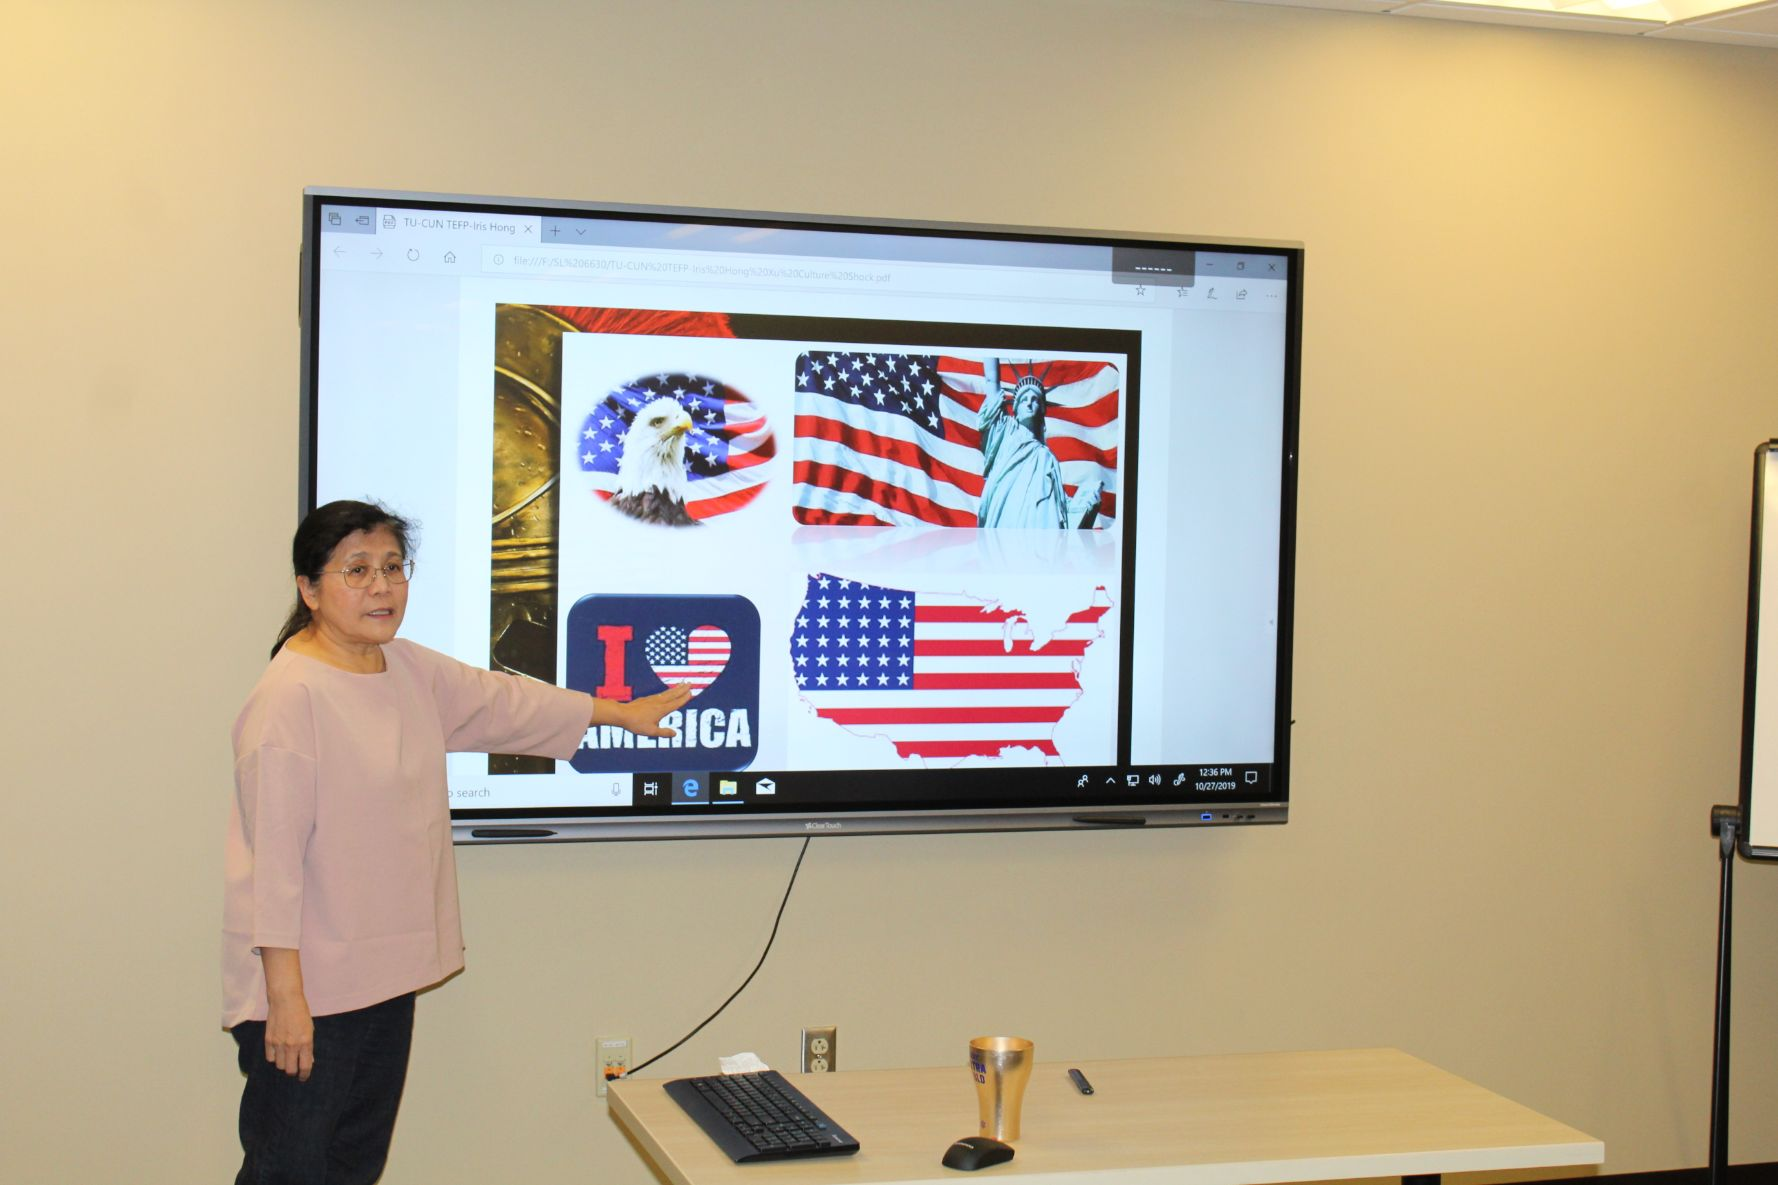 Dr. Xu presents an exposition on the culture shock facing immigrants to the US.